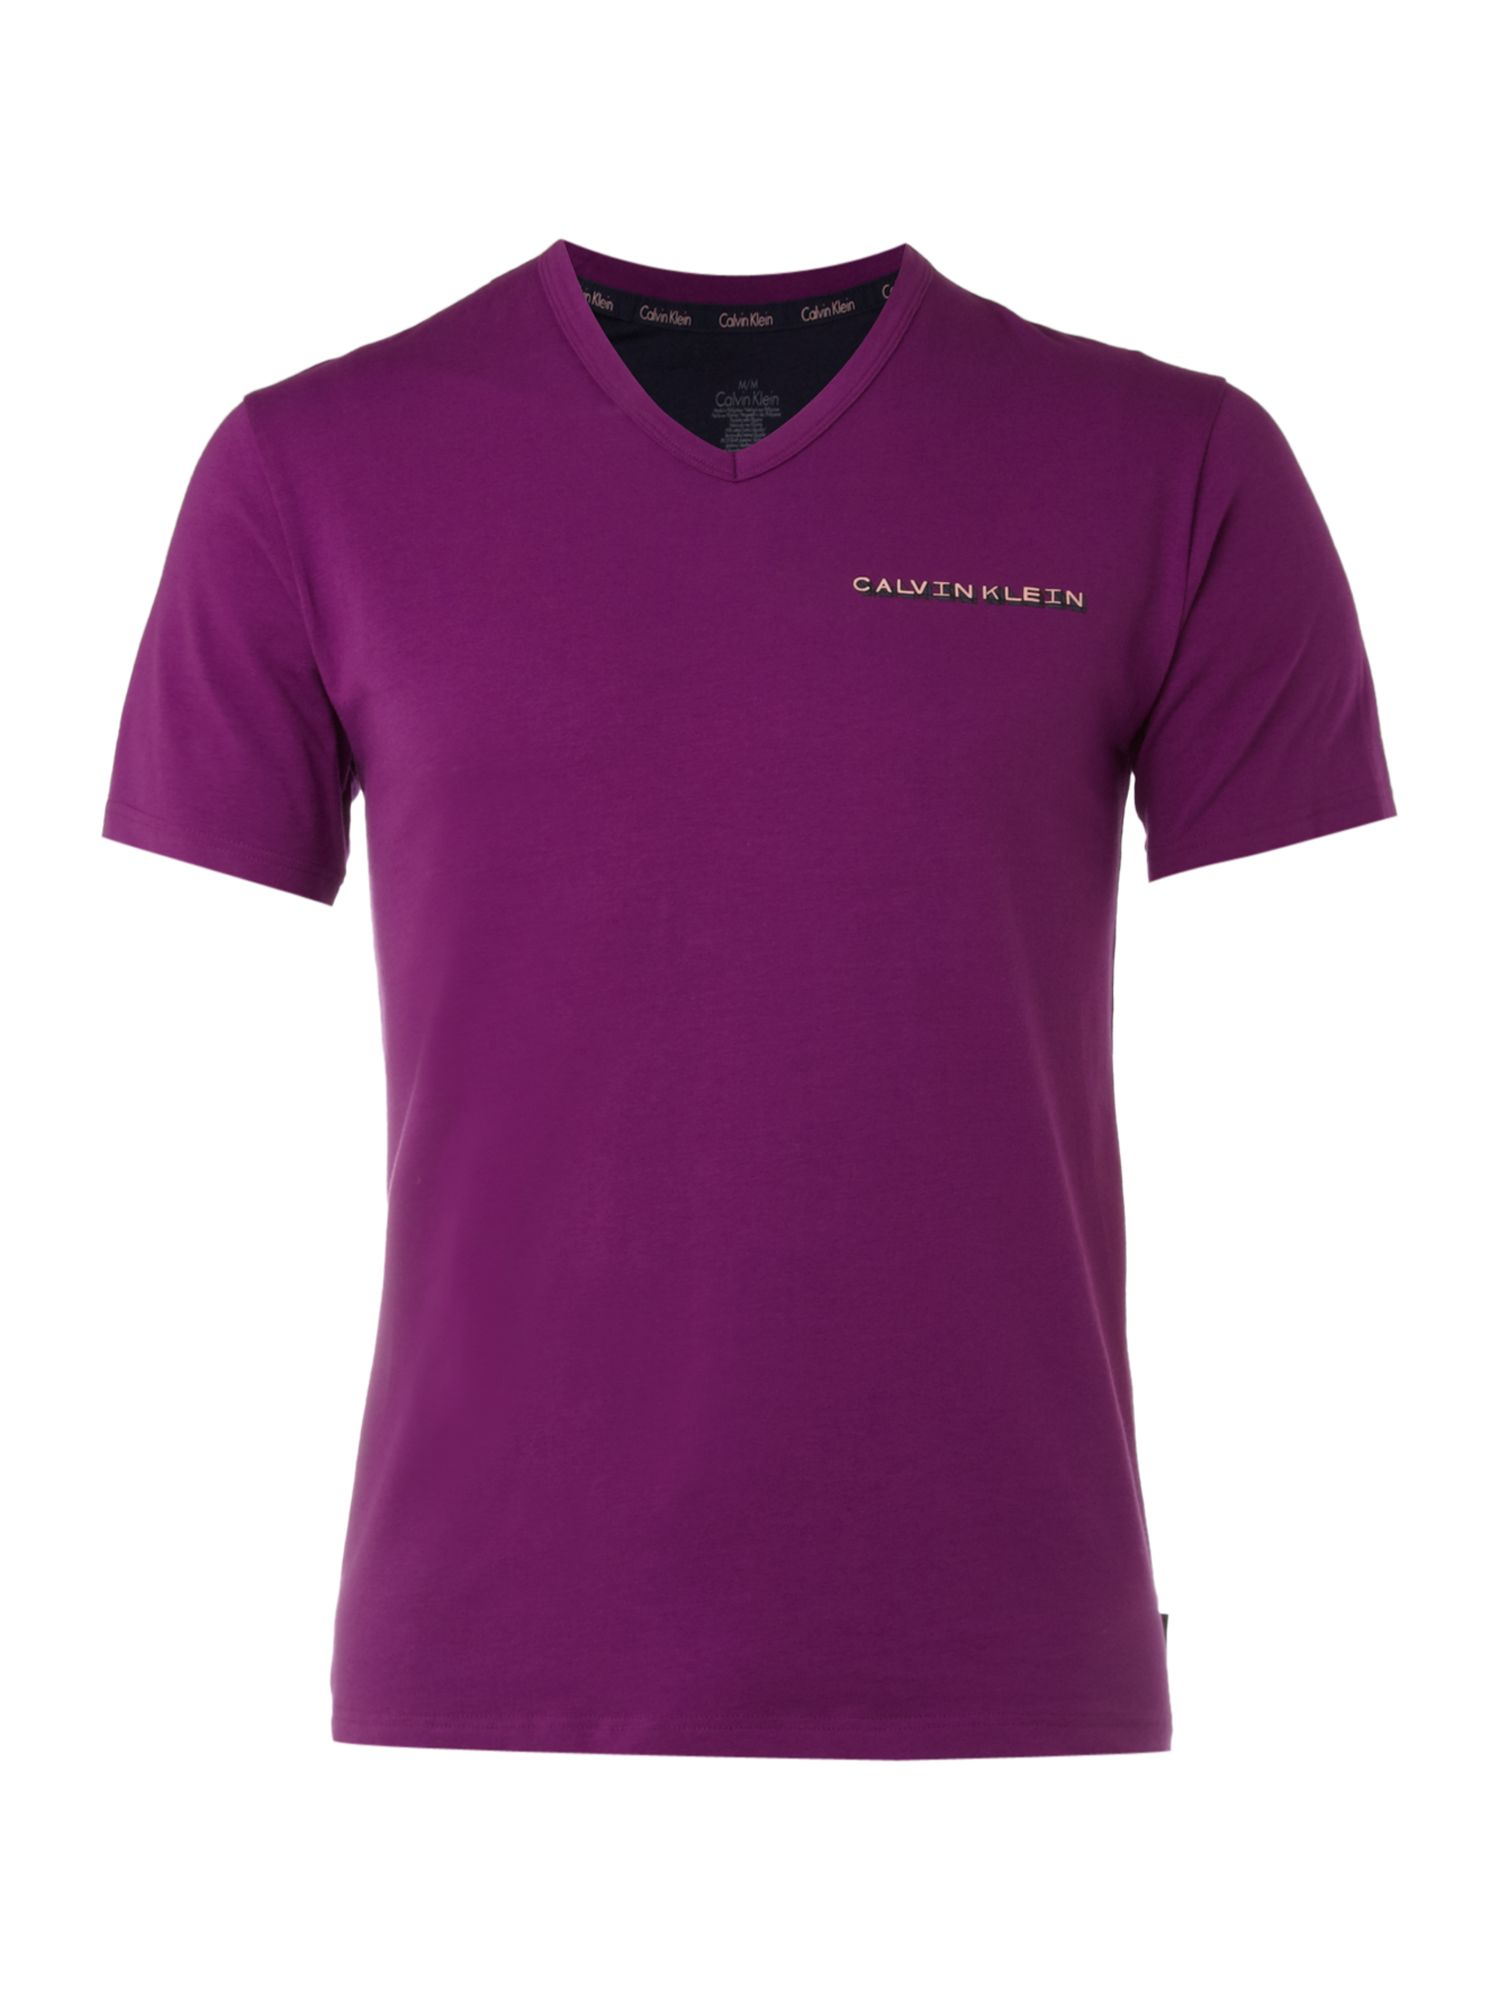 Calvin Klein Vneck t-shirt with logo - Purple product image